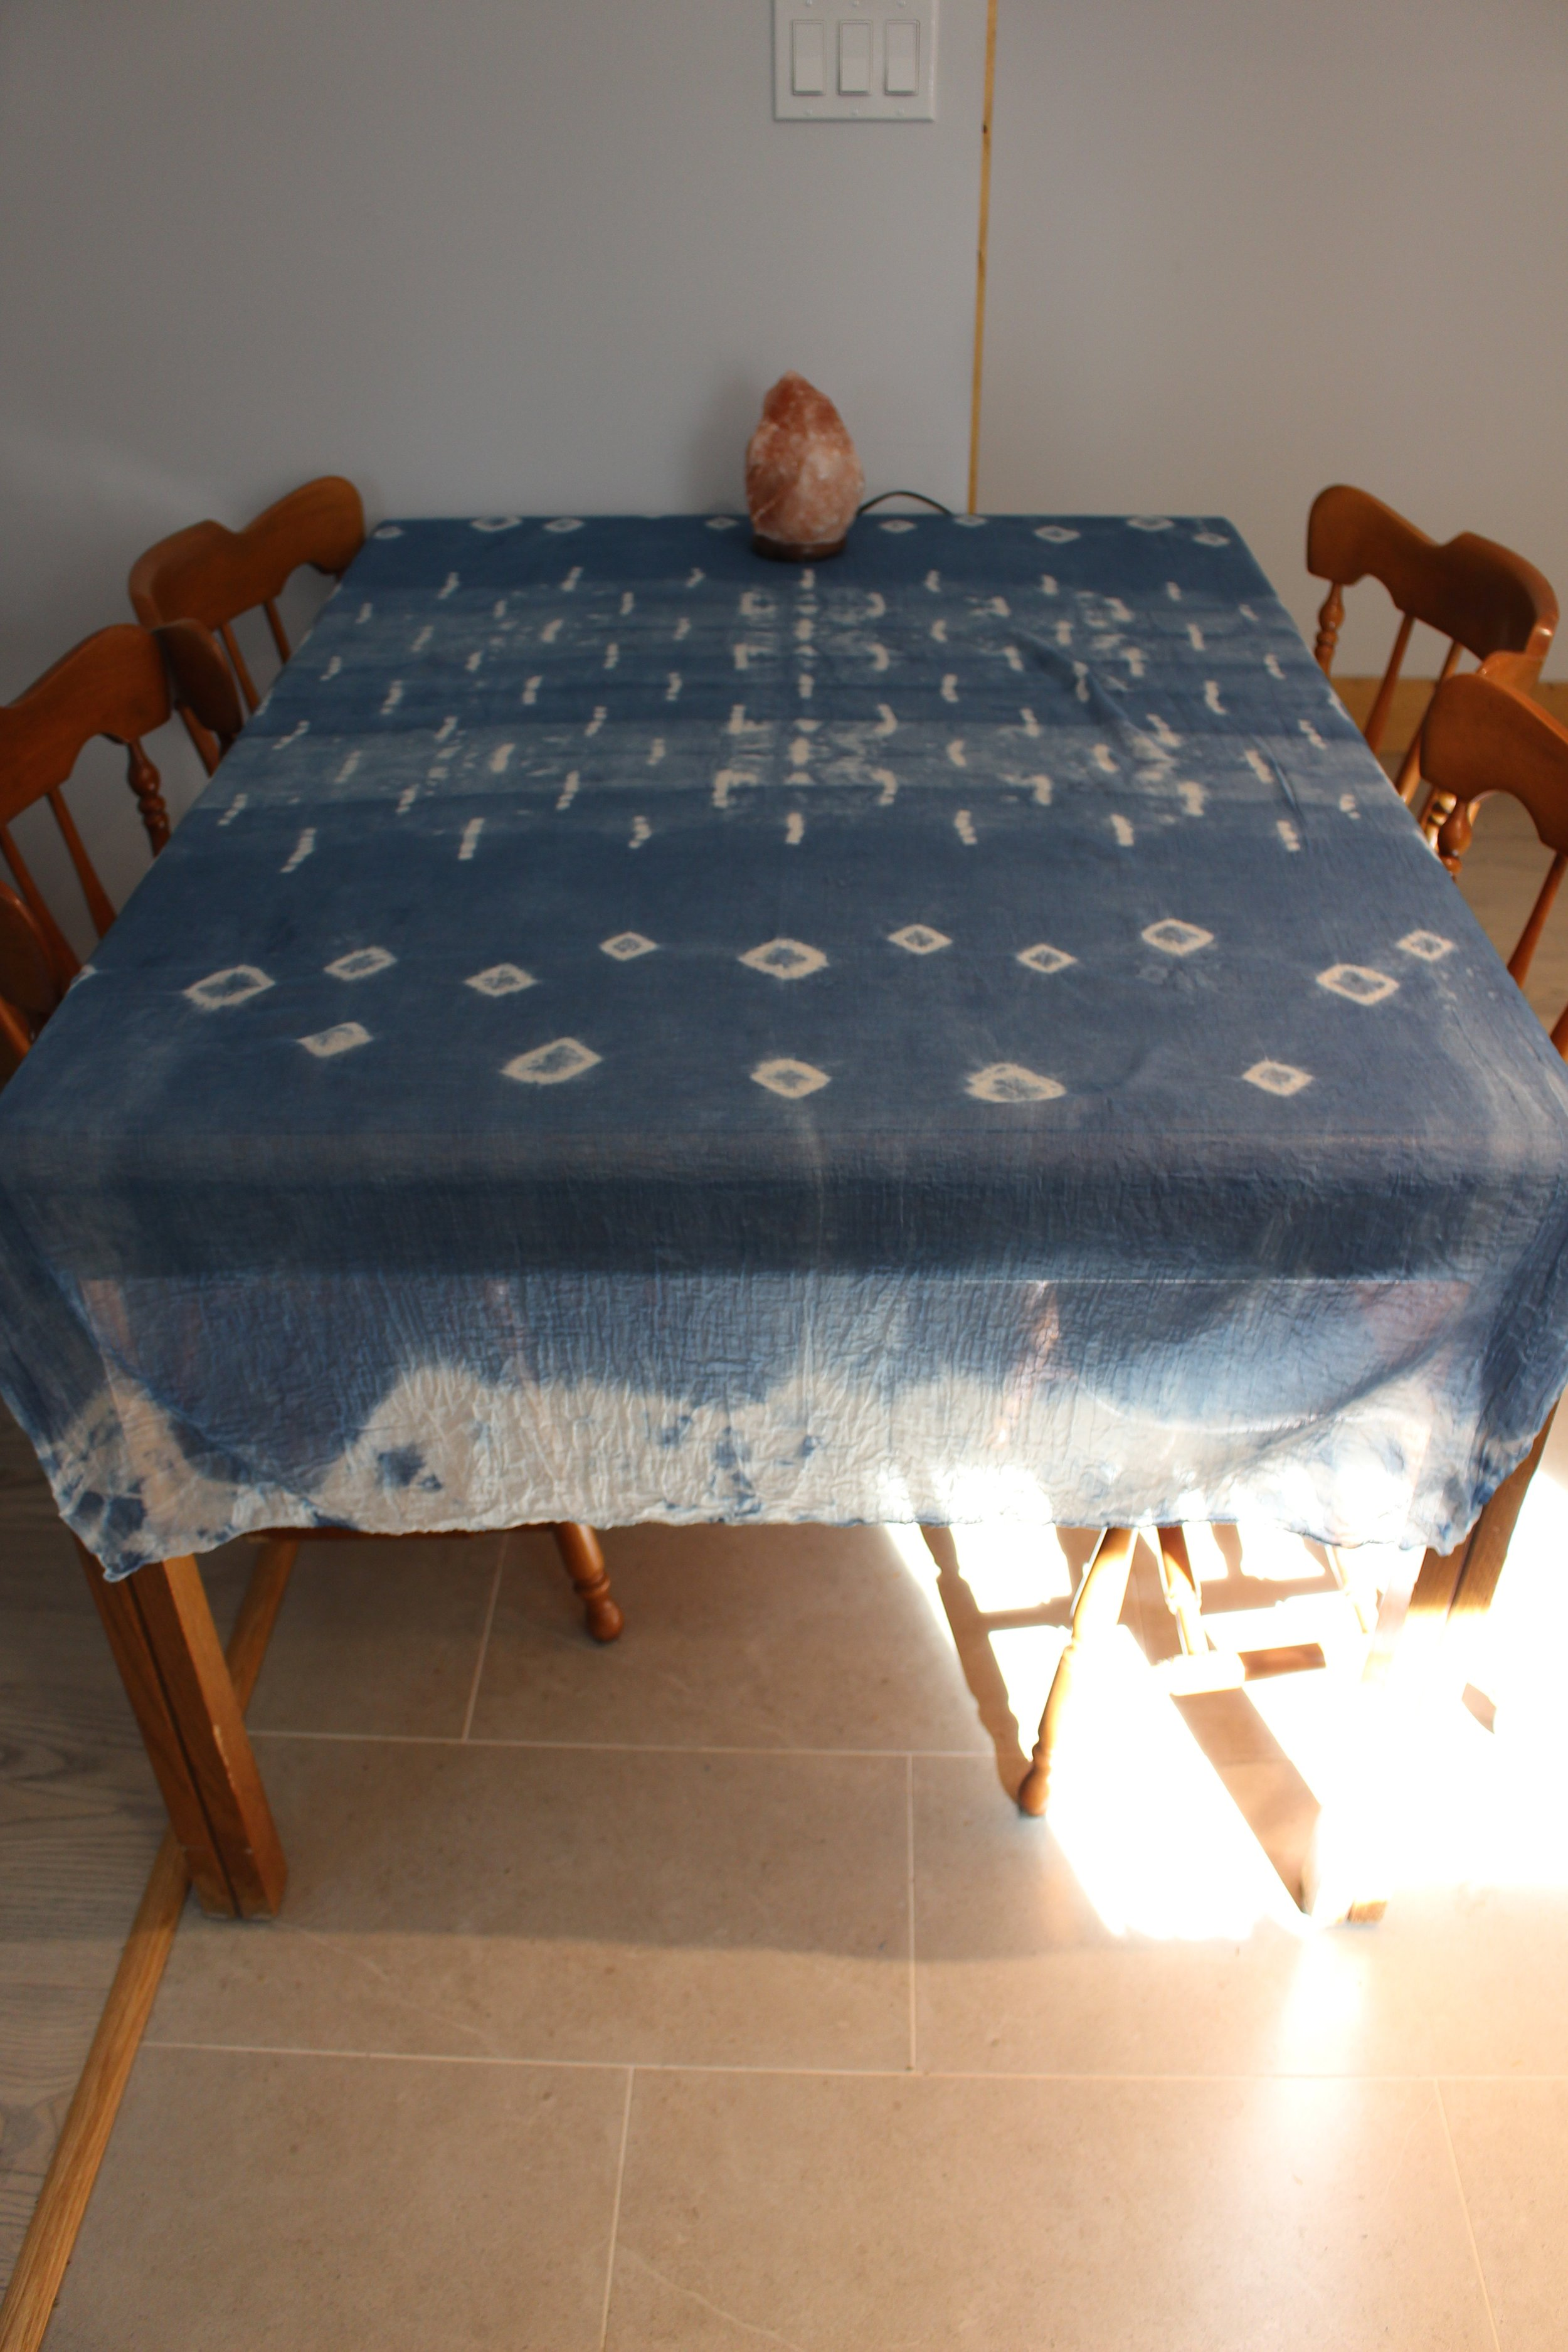 Maybe it will be a tablecloth...